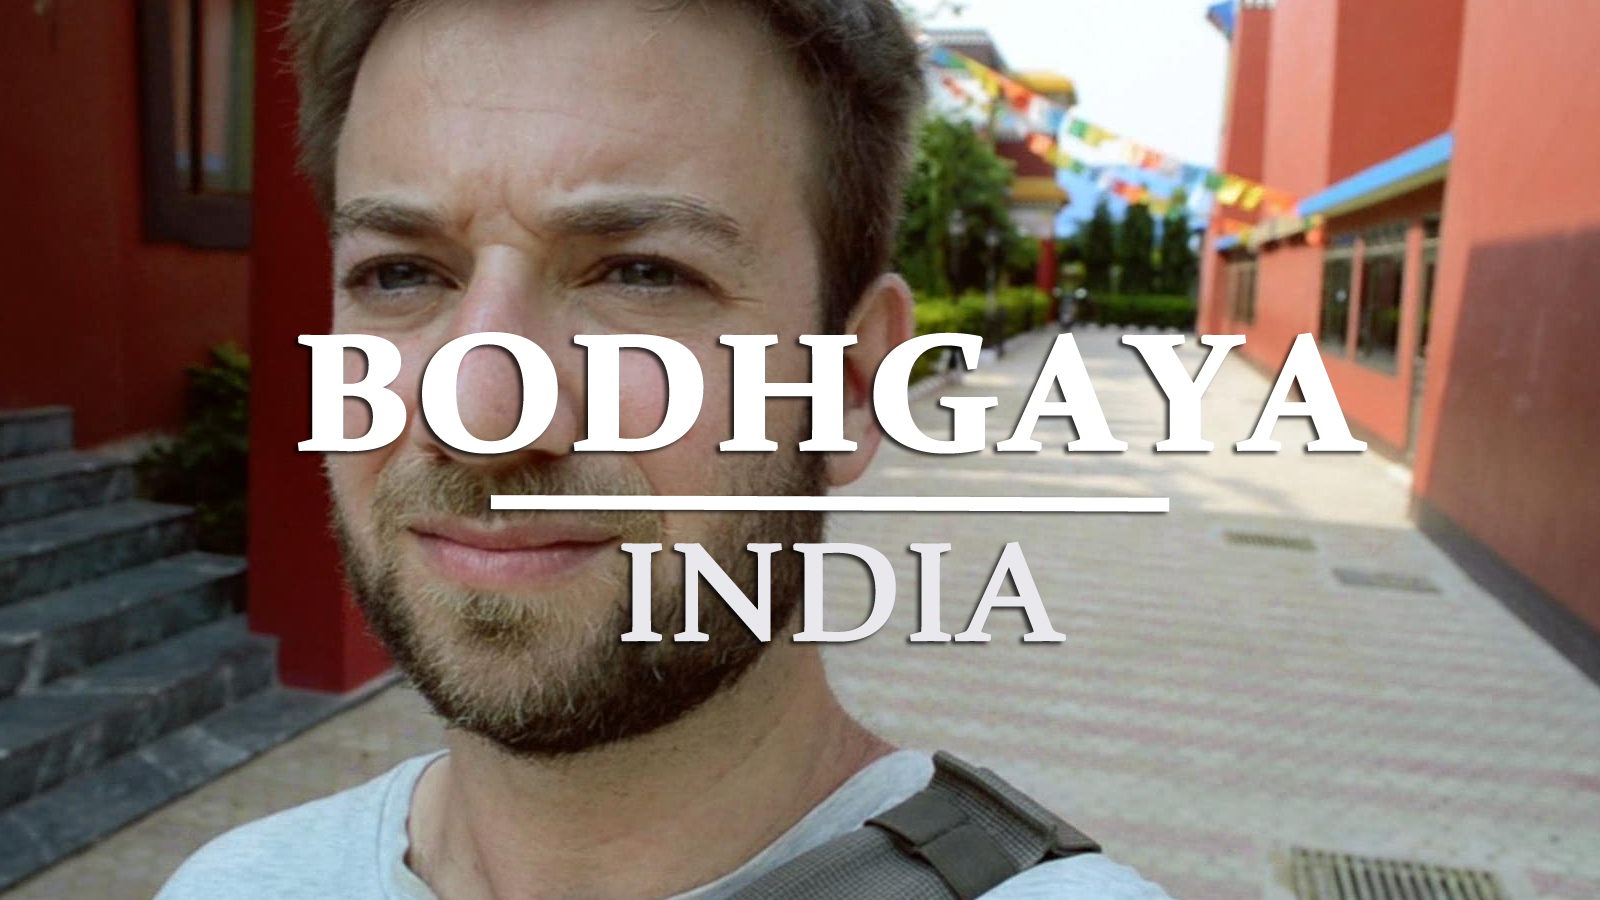 Travel Guide To India (Part 2): Bodhgaya